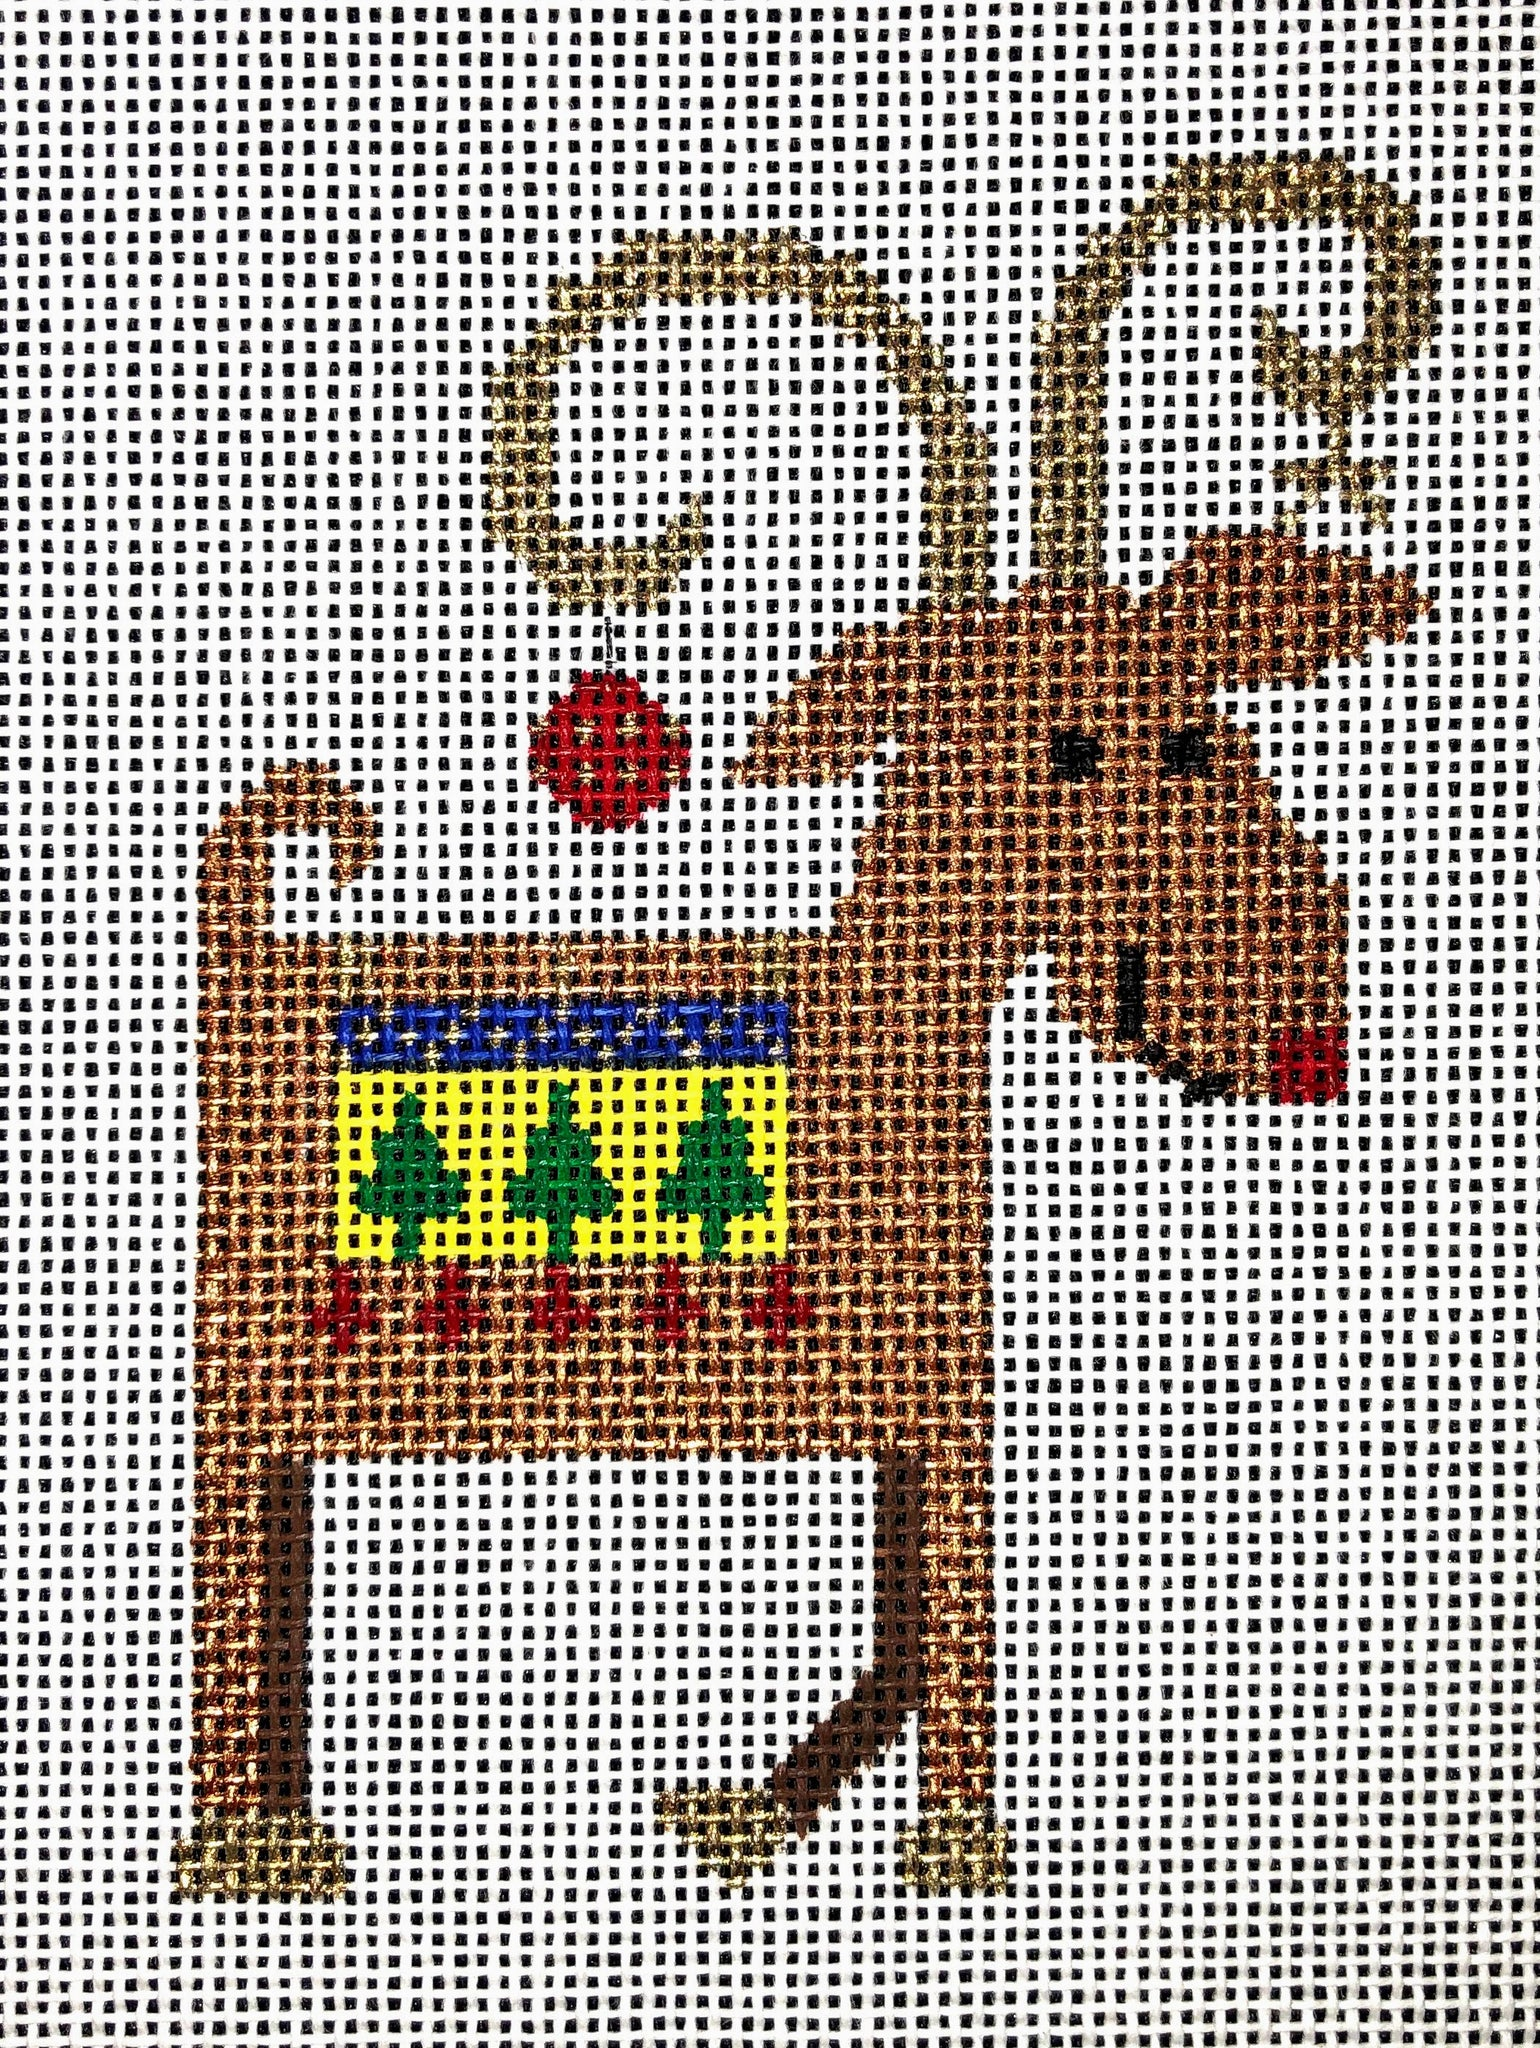 Deerheart - Stitch Guide Included